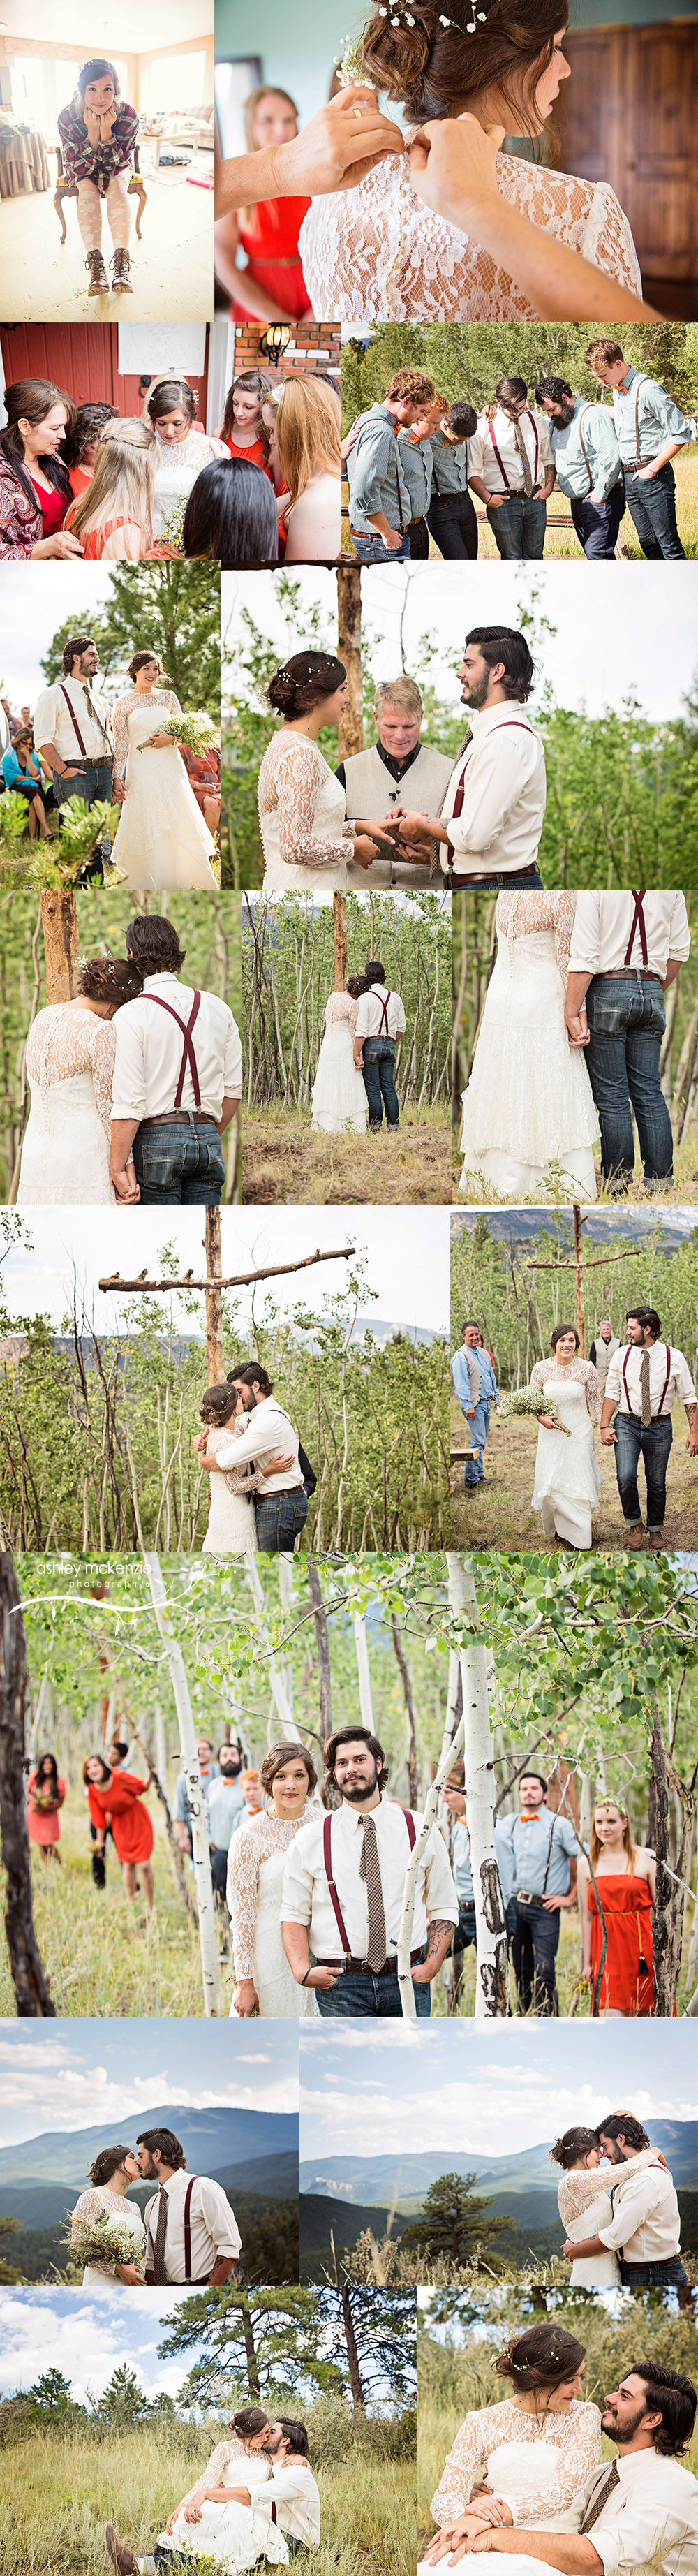 Wedding Photography by Ashley McKenzie Photography in Bailey, Colorado